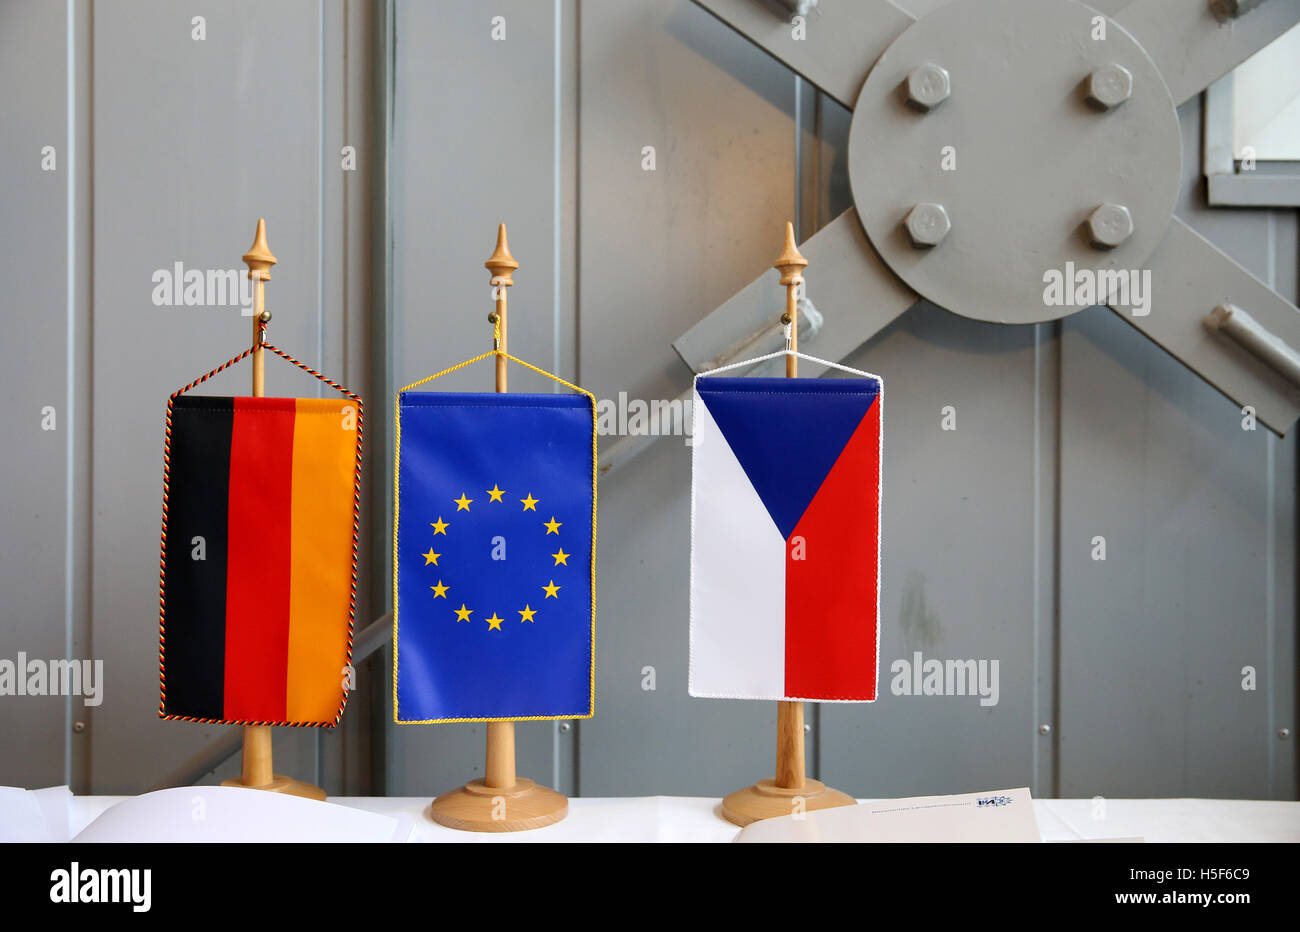 Deutschneudorf, Germany. 19th Oct, 2016. The German, European and Czech flag can be seen in Deutschneudorf, Germany, - Stock Image